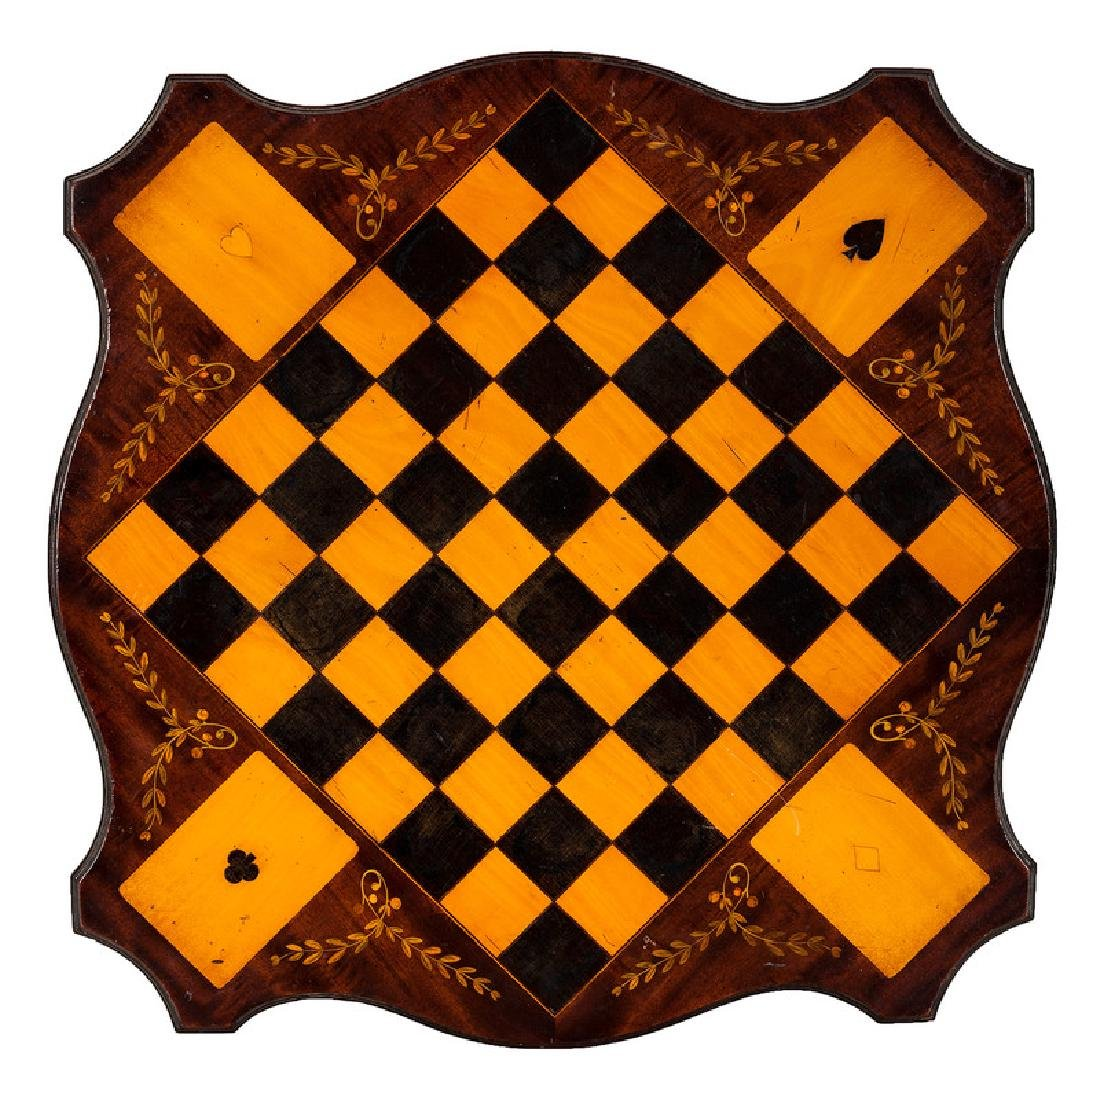 Inlaid Wooden Game Board